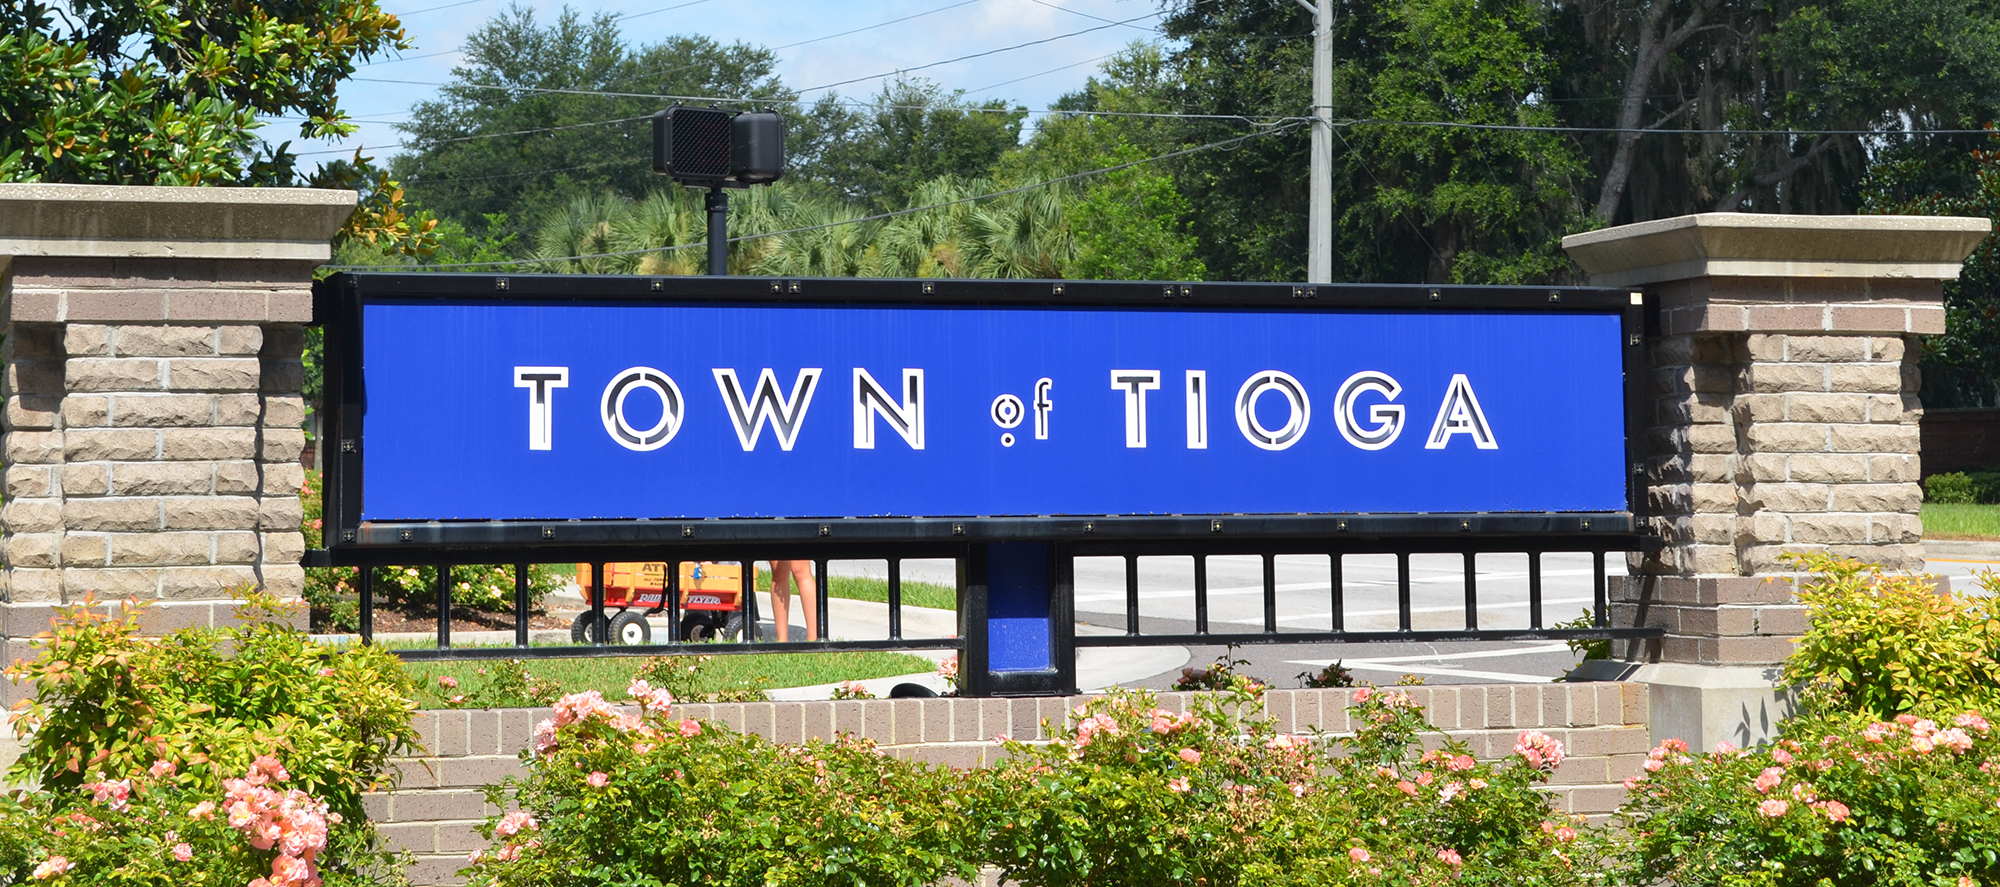 town-of-tioga